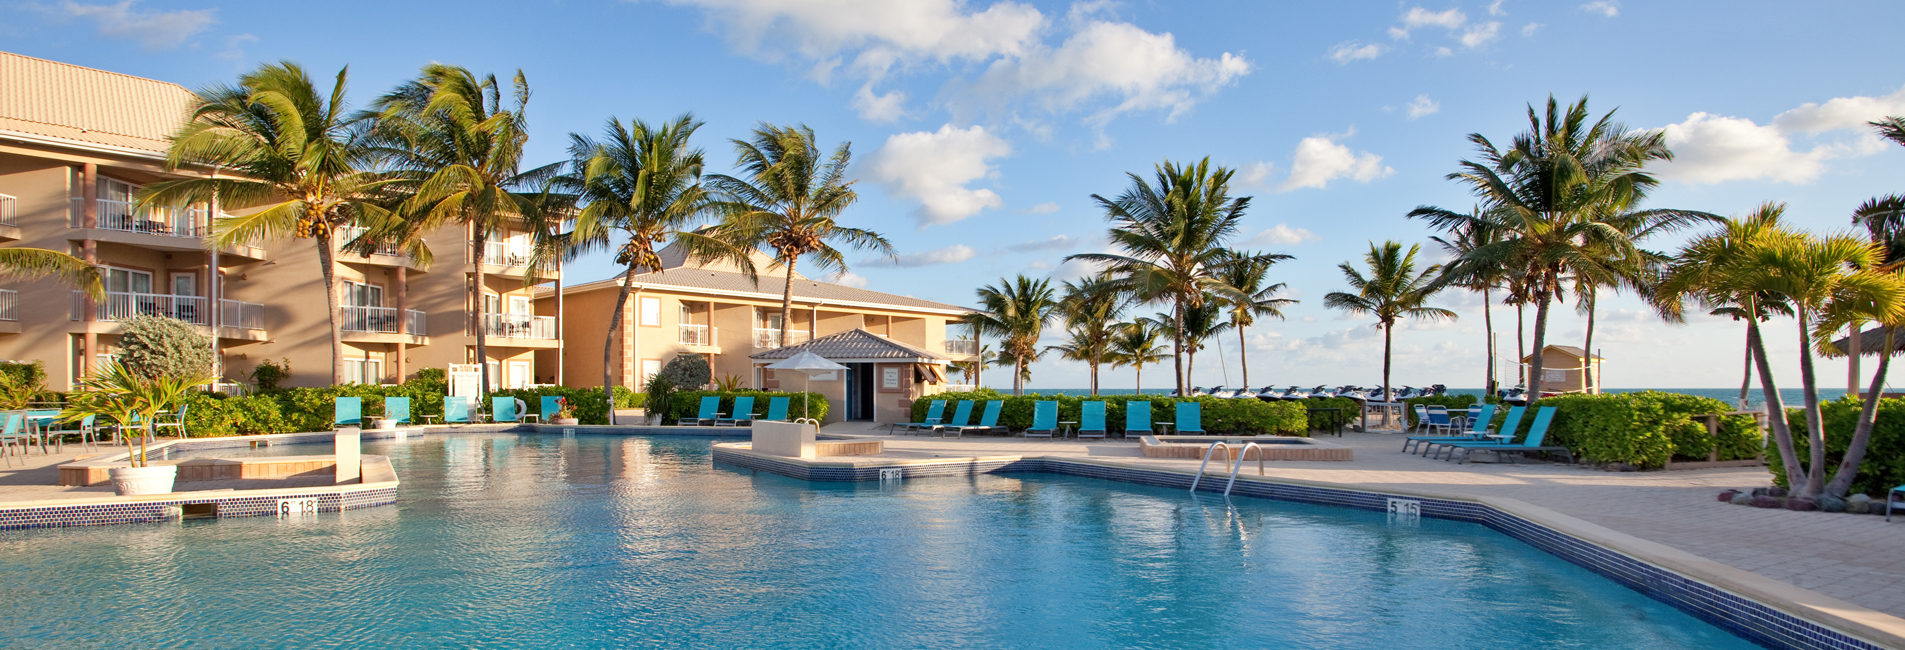 Hotels in Grand Cayman with pool